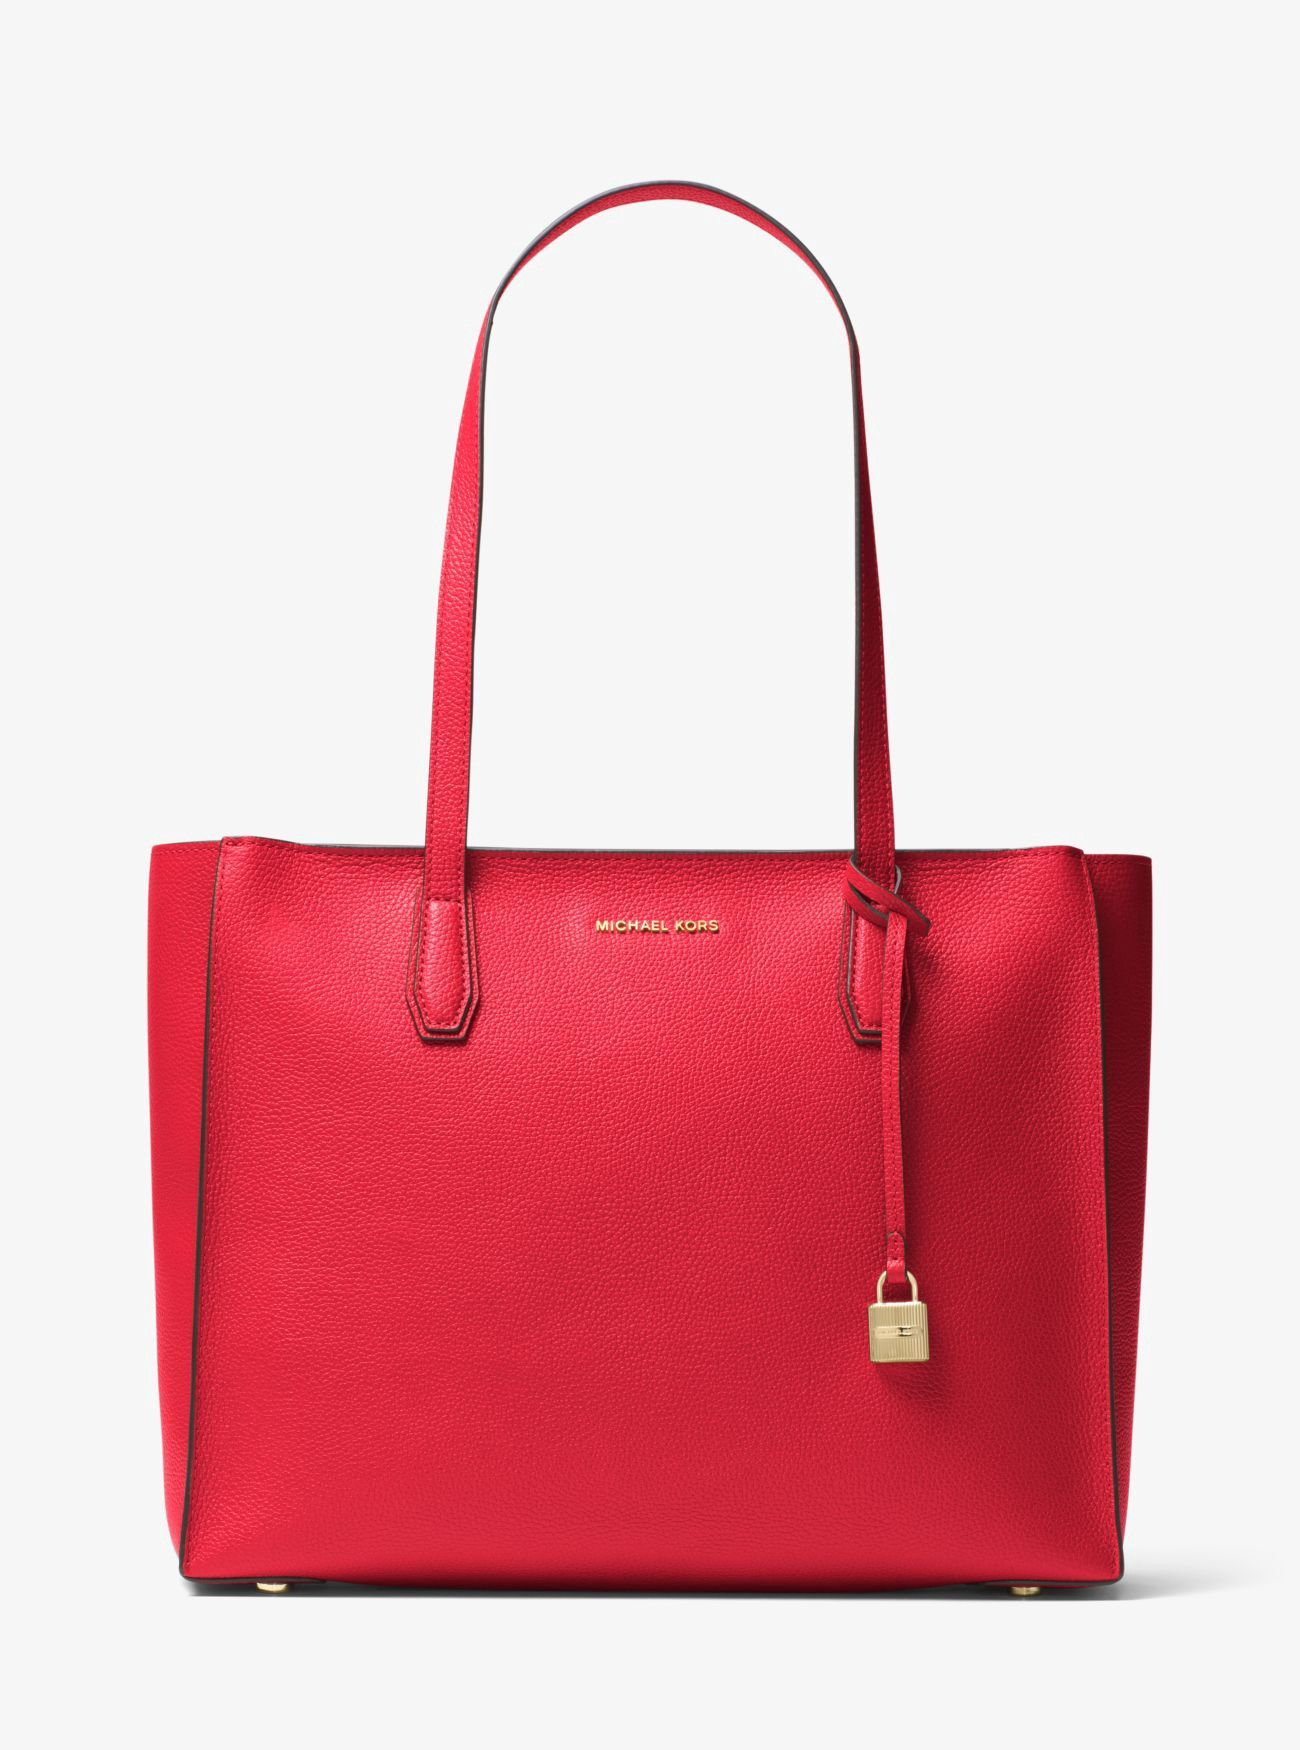 b0613e44715d MICHAEL KORS Mercer Large Top-Zip Leather Tote. #michaelkors #bags #leather  #hand bags #polyester #tote #lining #